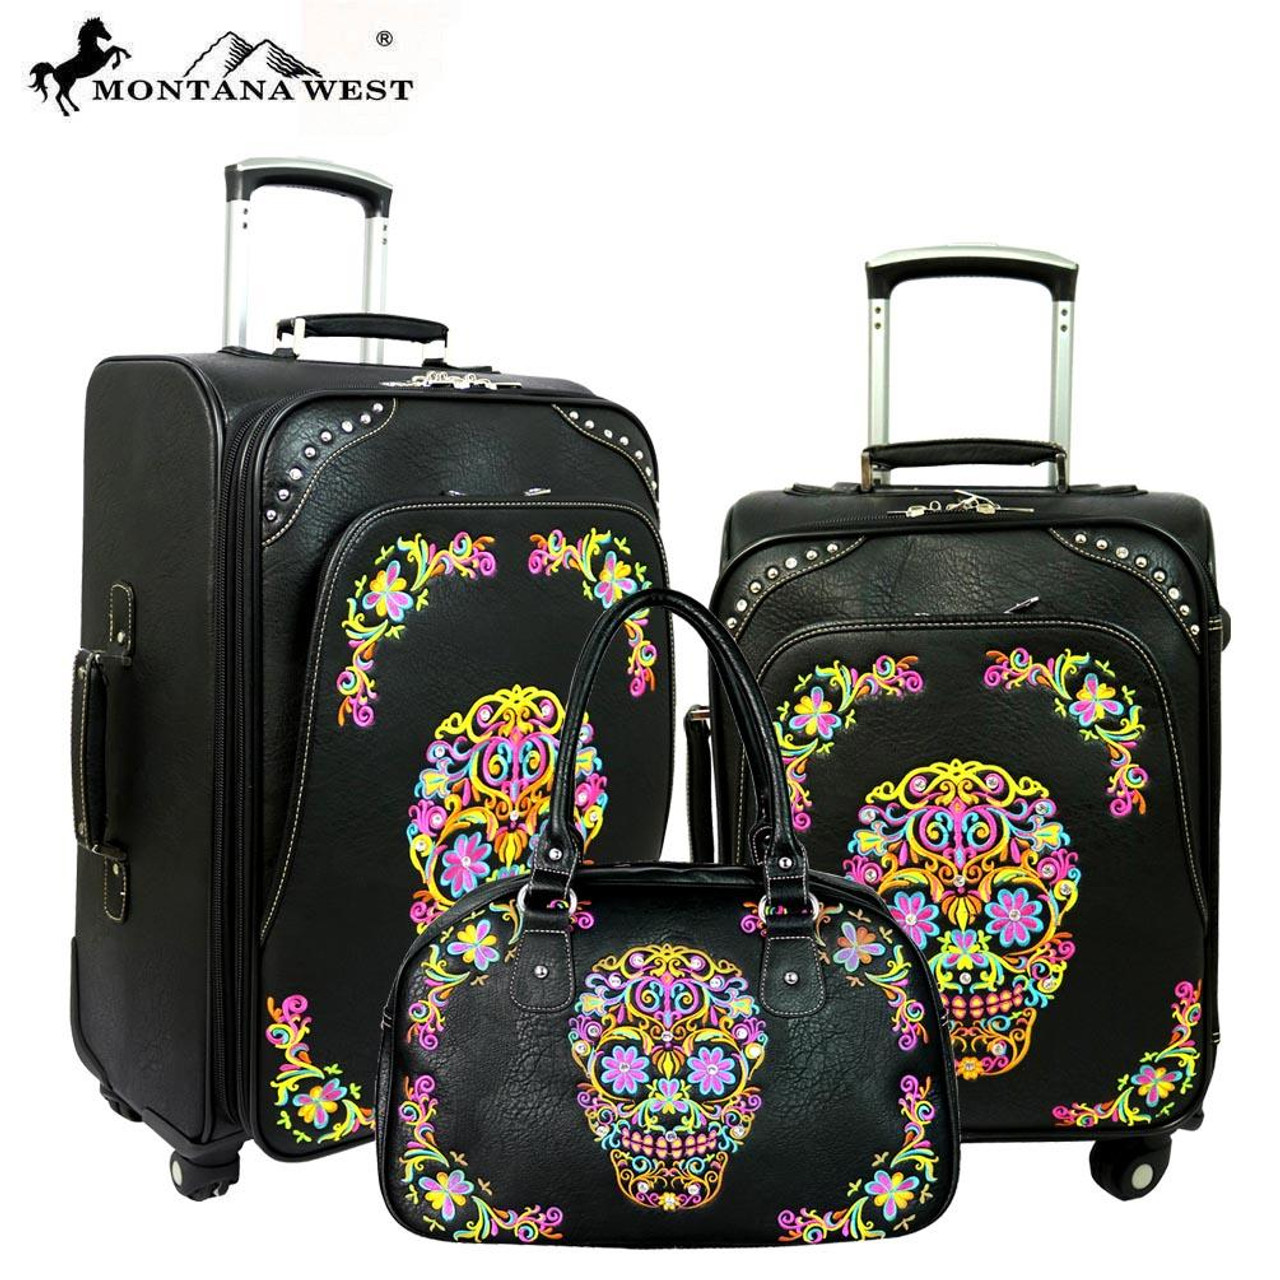 Montana West Western Floral Tooled Leather 3 PC Luggage Set suitcases /& satchel